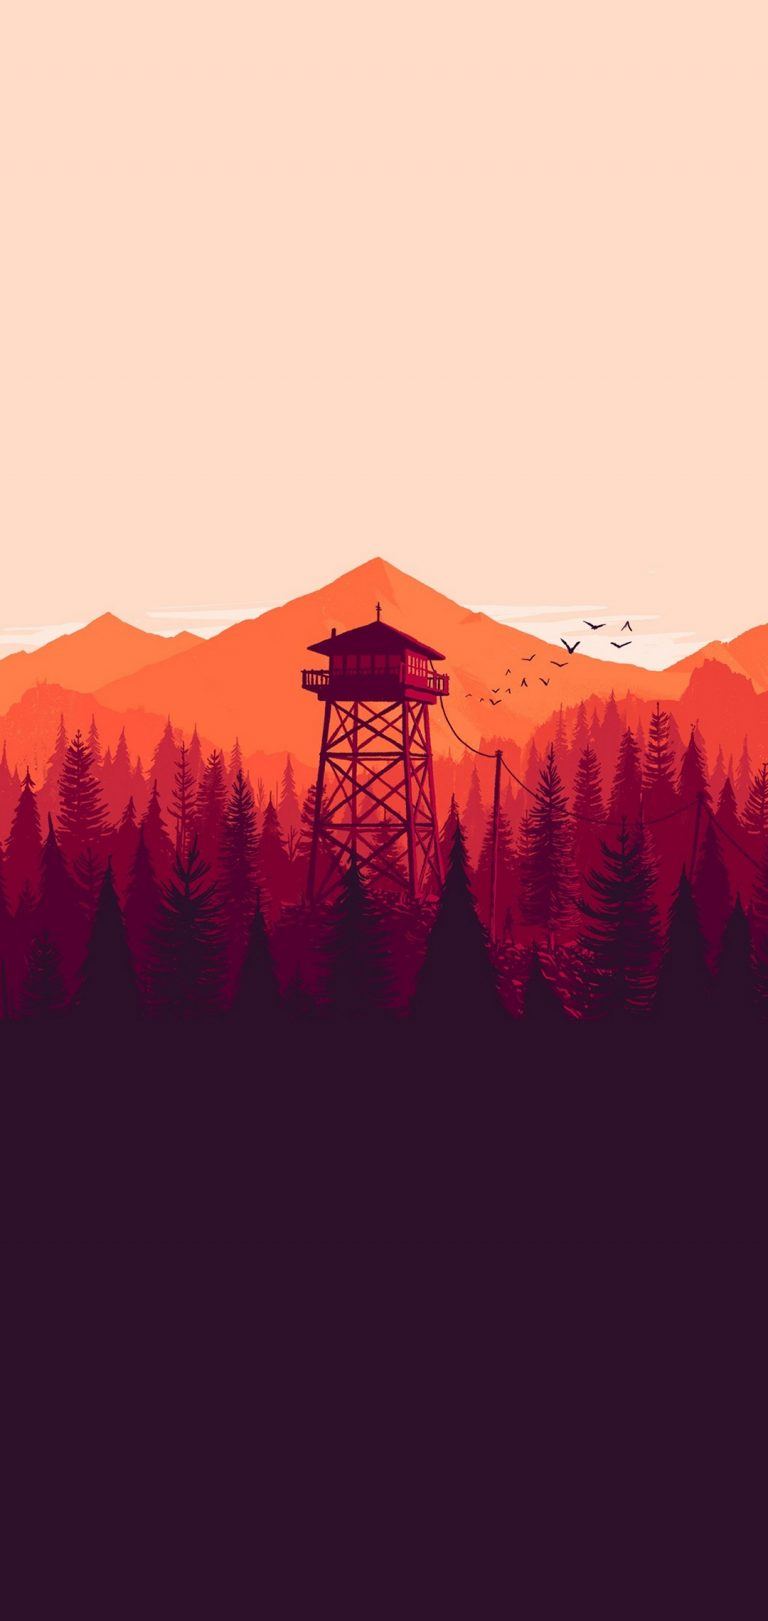 Firewatch Wallpaper 1080x2280 768x1621